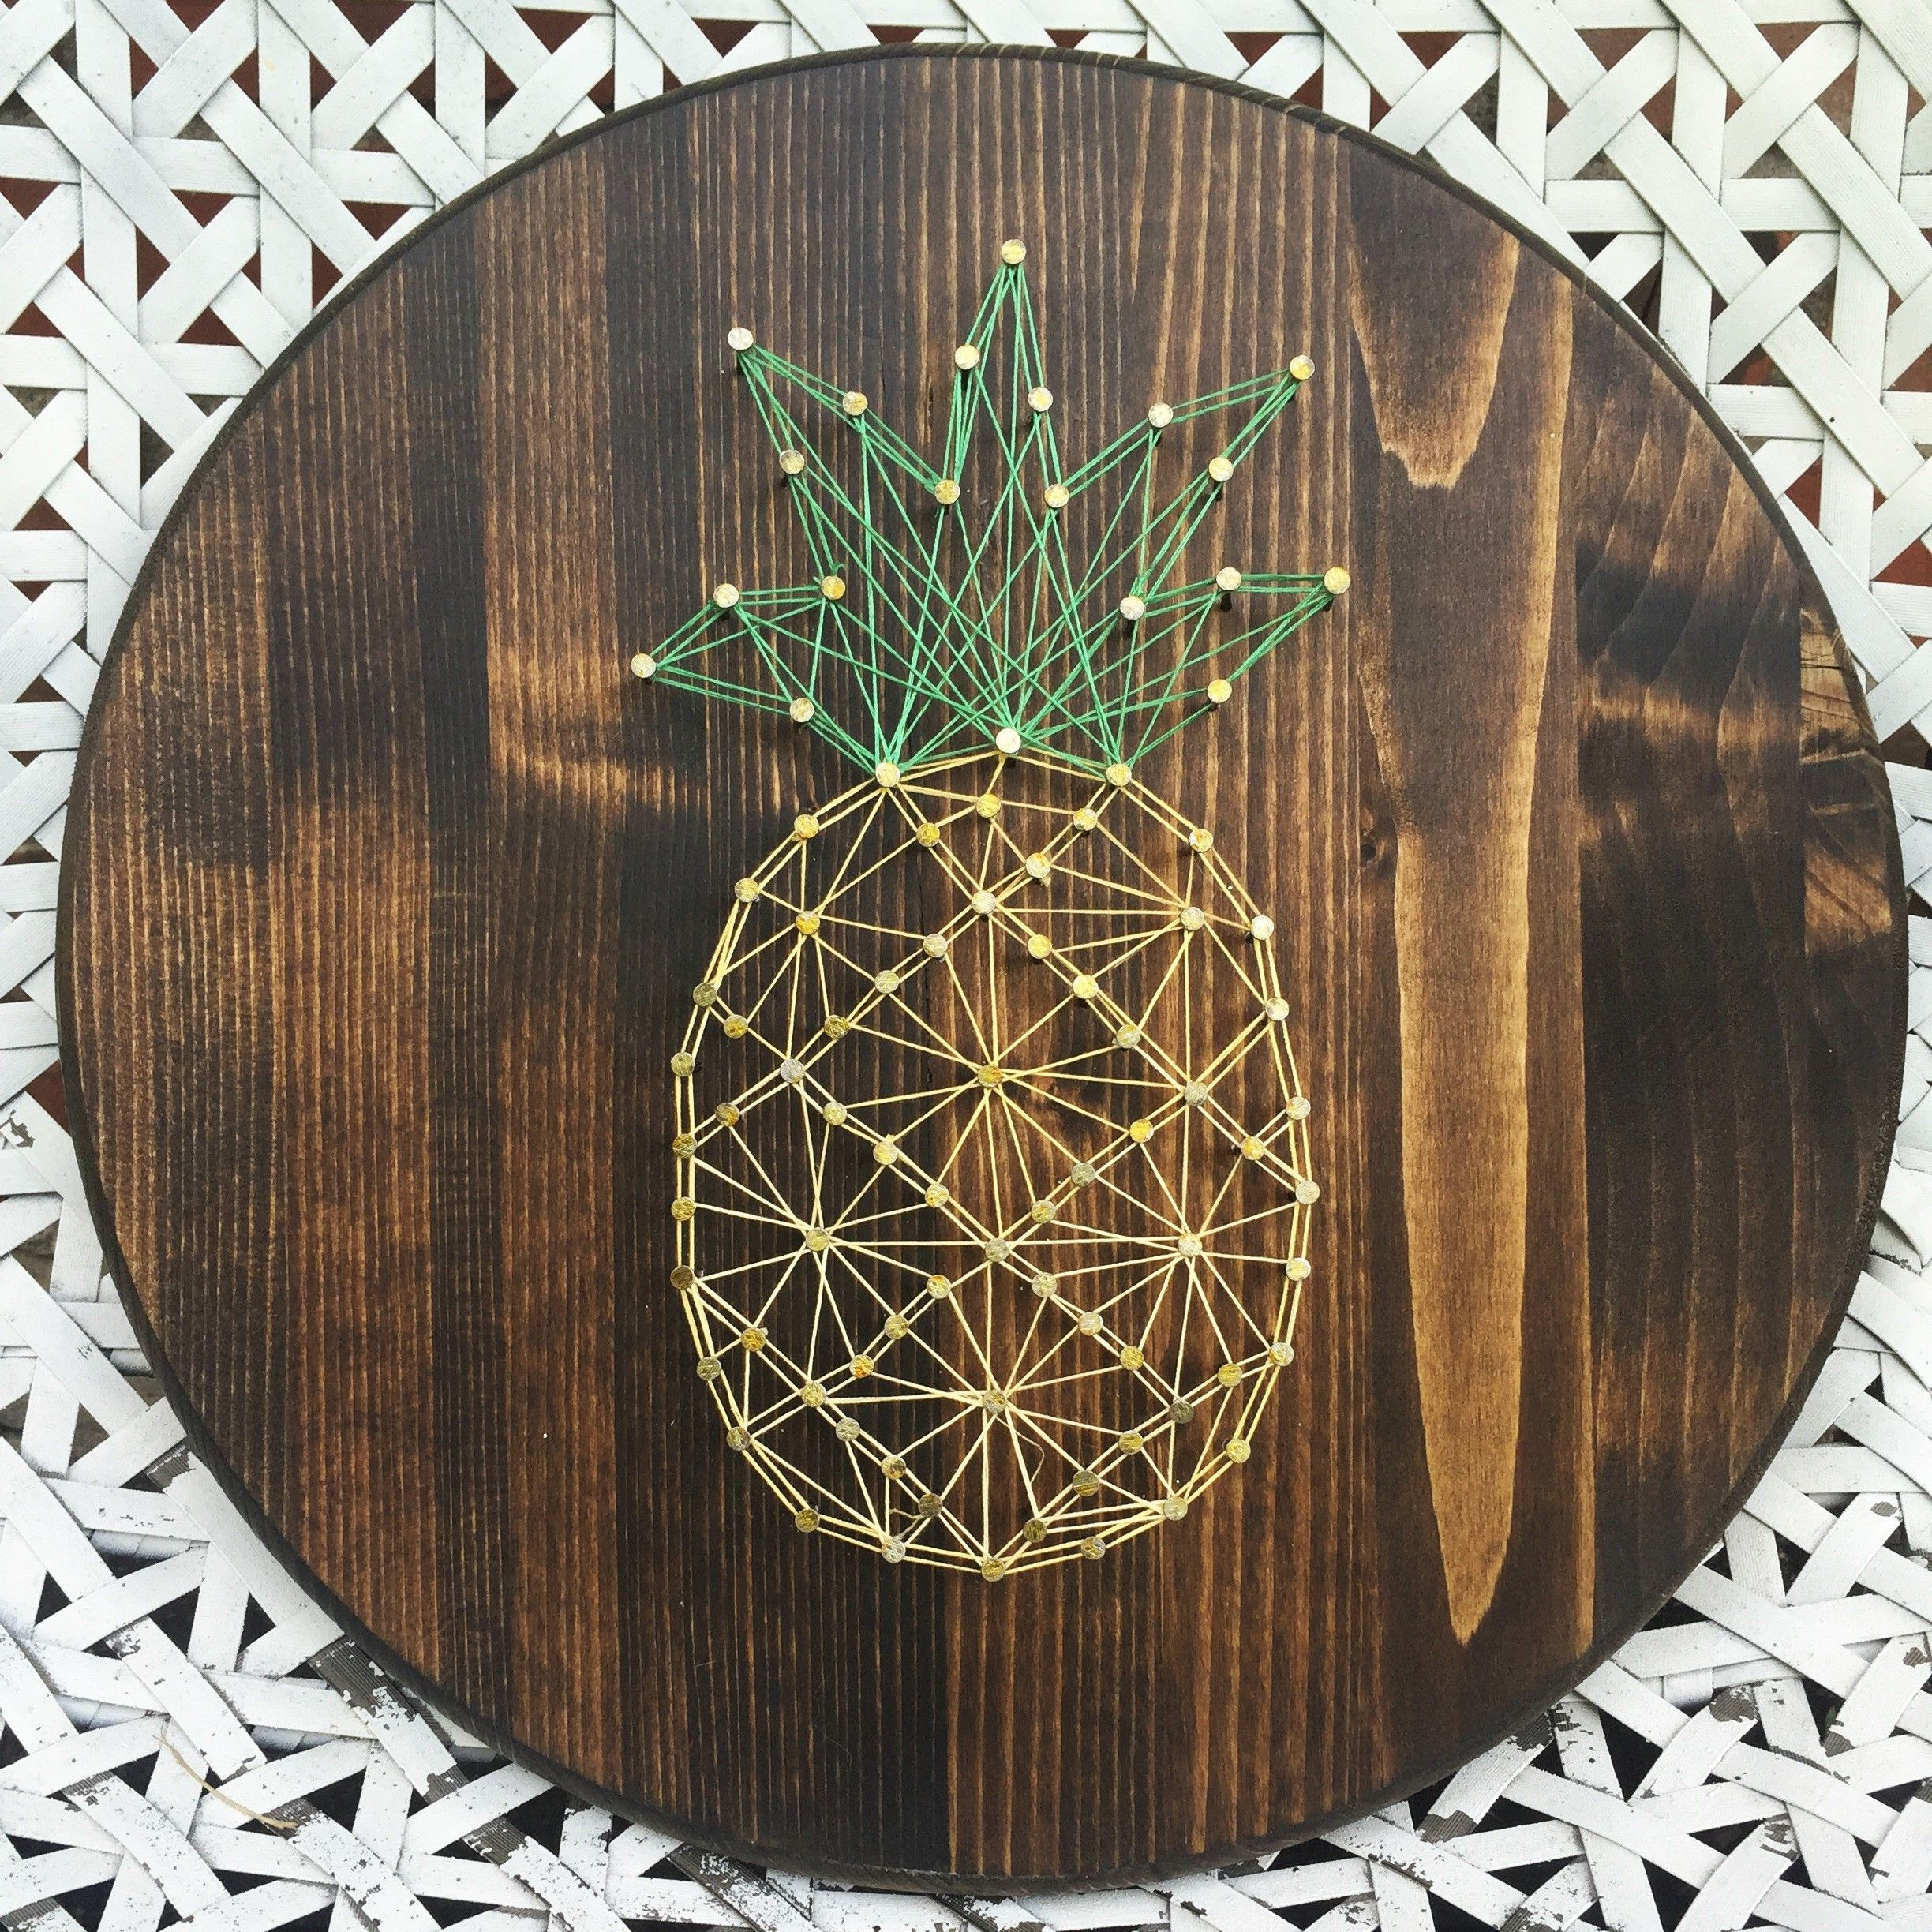 pineapple string art diy idea inspiration pinterest. Black Bedroom Furniture Sets. Home Design Ideas